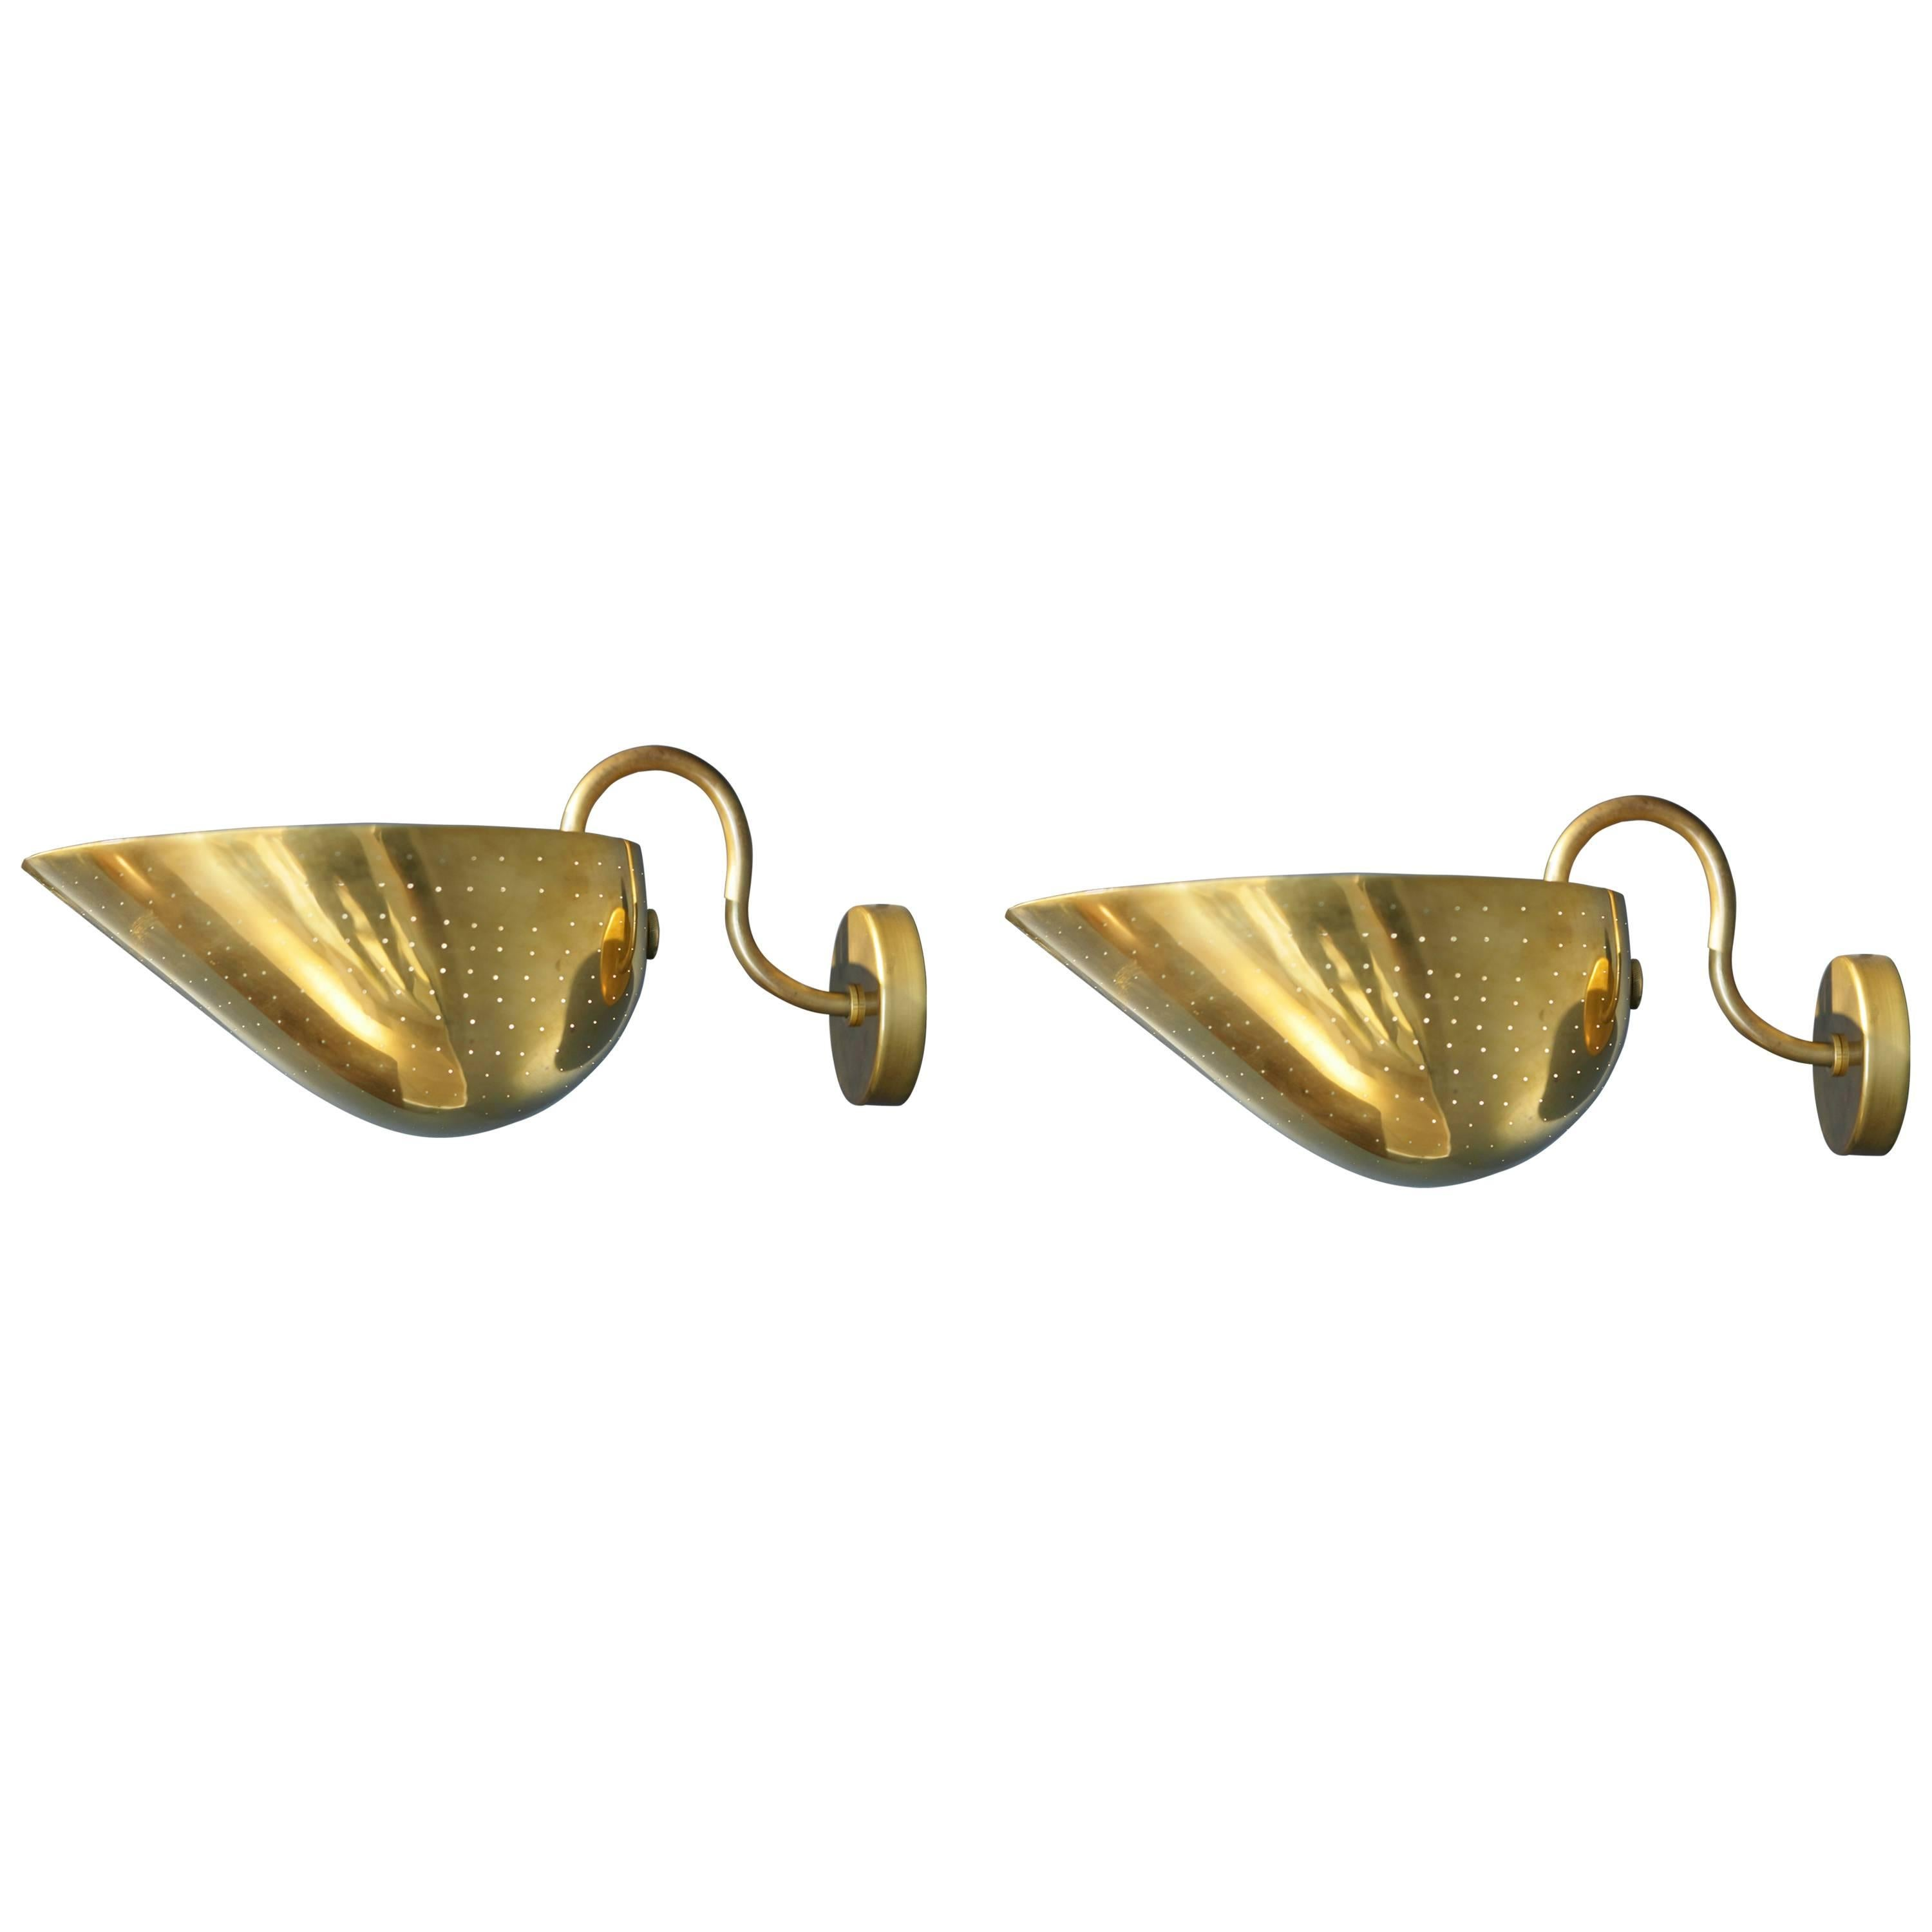 Carl-Axel Acking, Pair of Large Brass Sconces, Sweden, 1940s